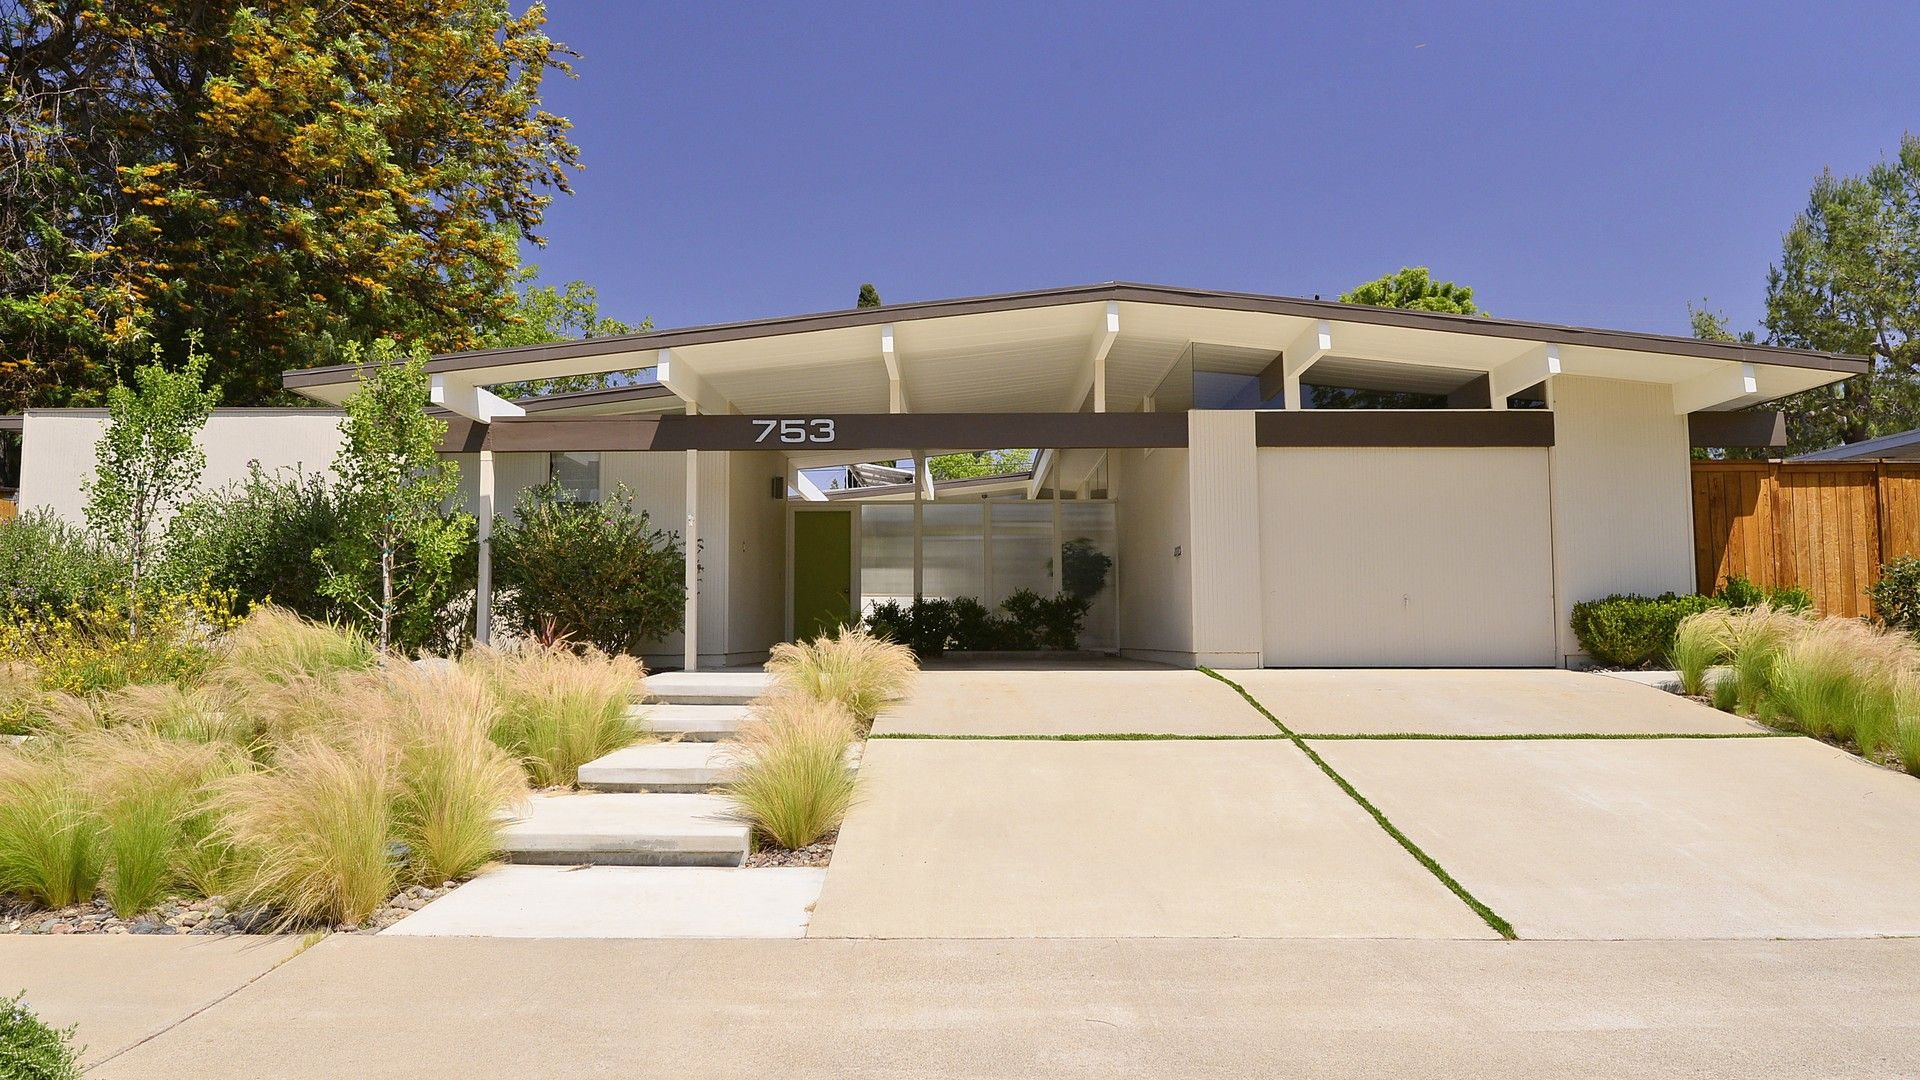 Eichler Homes In Southern California Socal Eichlers For Sale Modern Homes For Sale Mid Century Modern House Eichler Homes